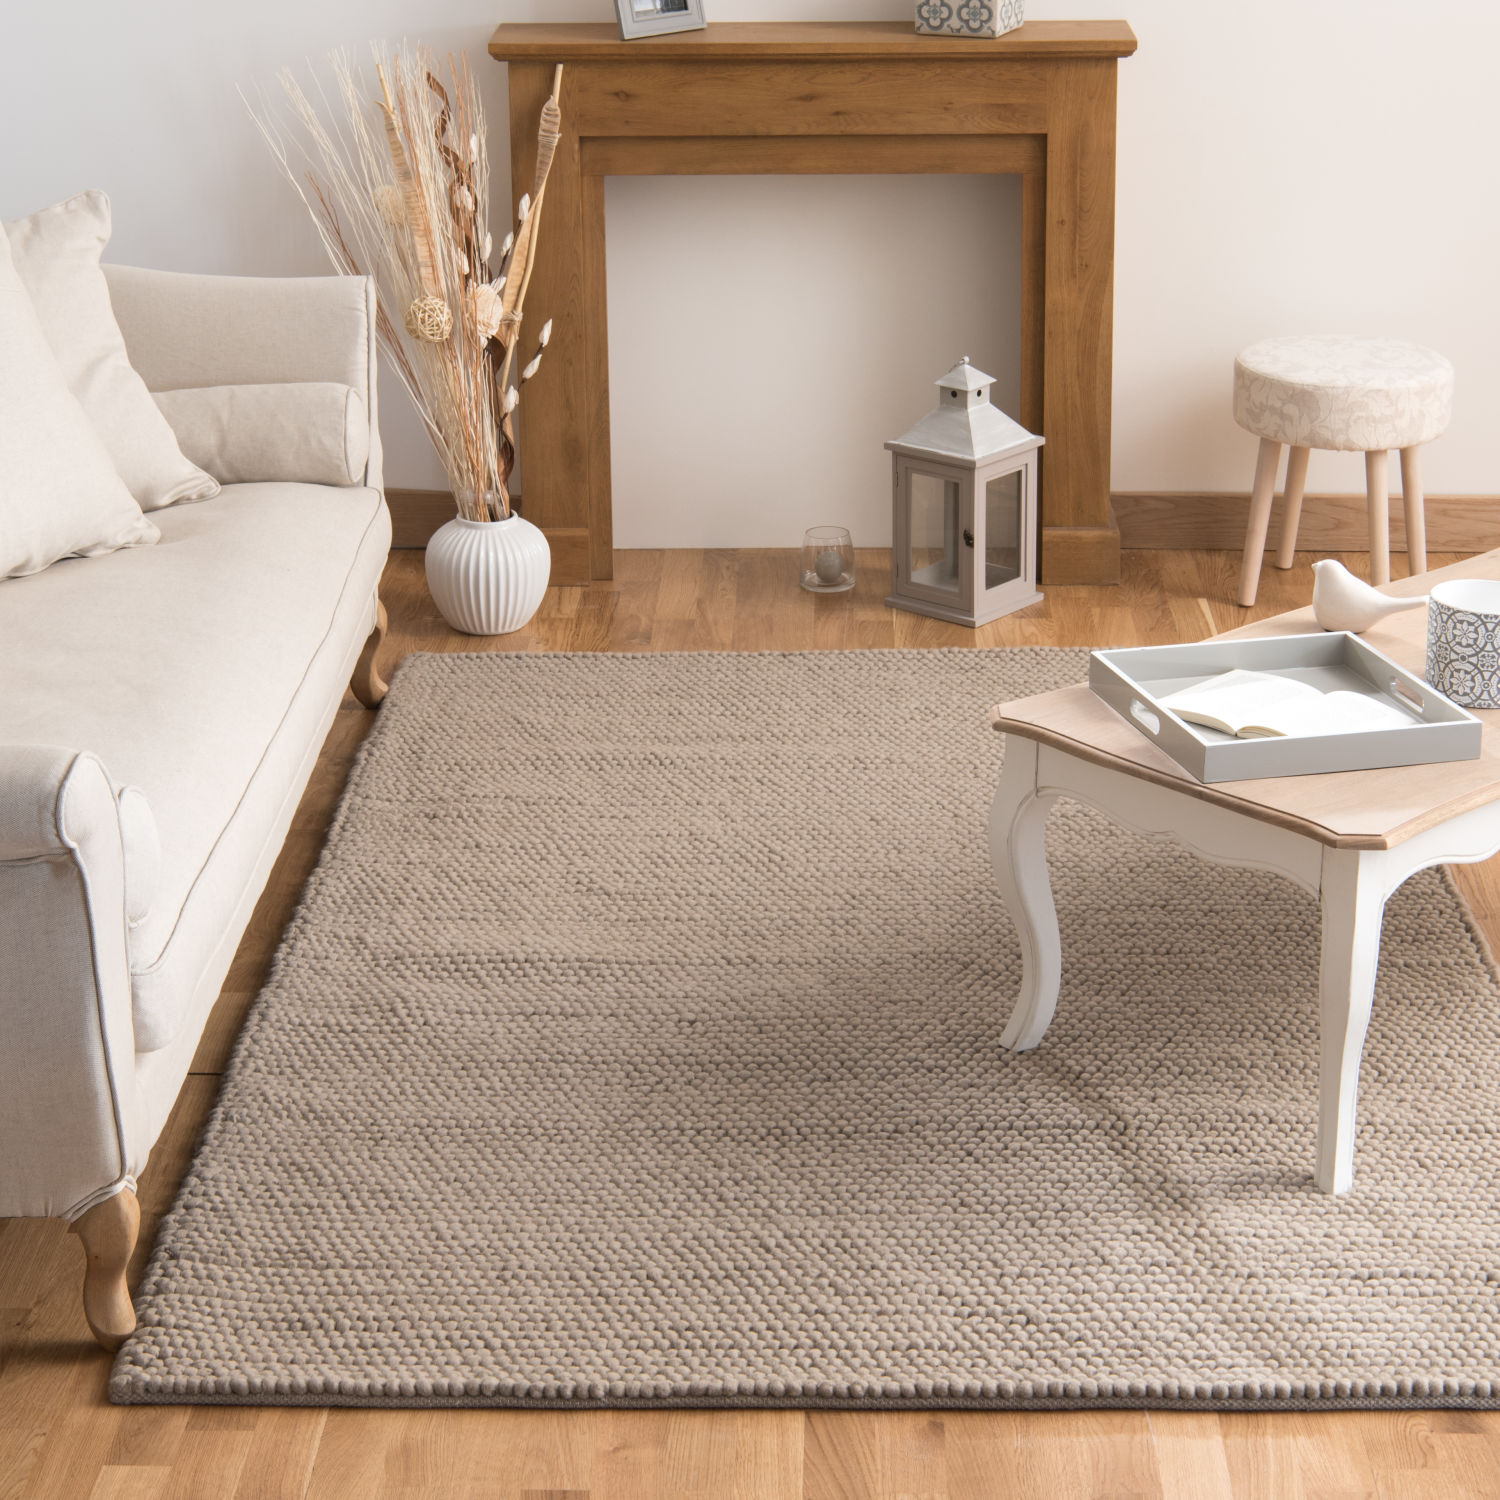 tapis en laine beige 160 x 230 cm maisons du monde. Black Bedroom Furniture Sets. Home Design Ideas